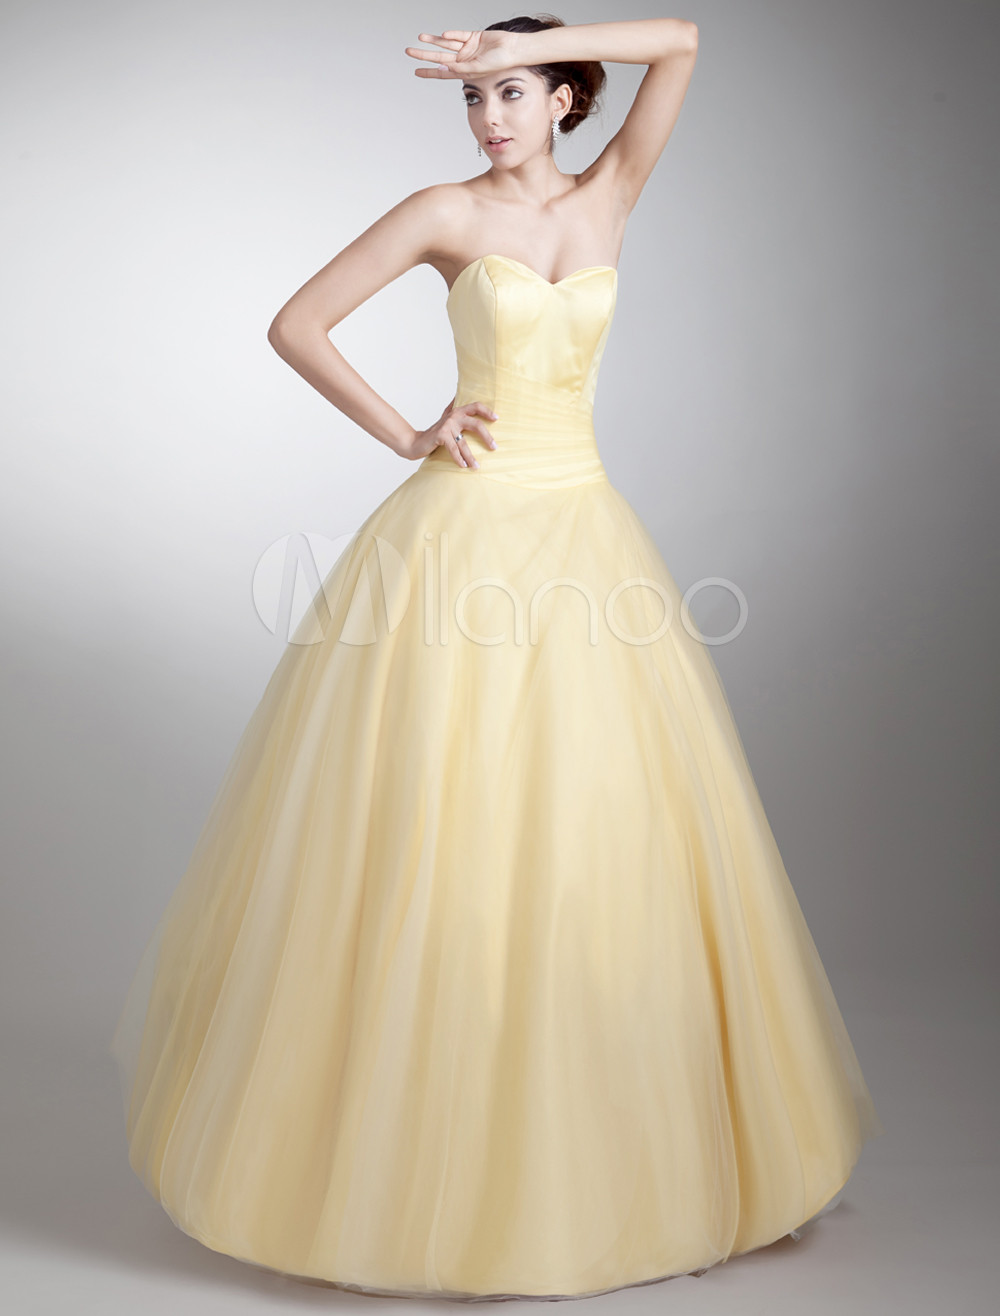 6854617e4580 Ball Gown Daffodil Sweetheart Neck Tiered Net Prom Dress - Milanoo.com